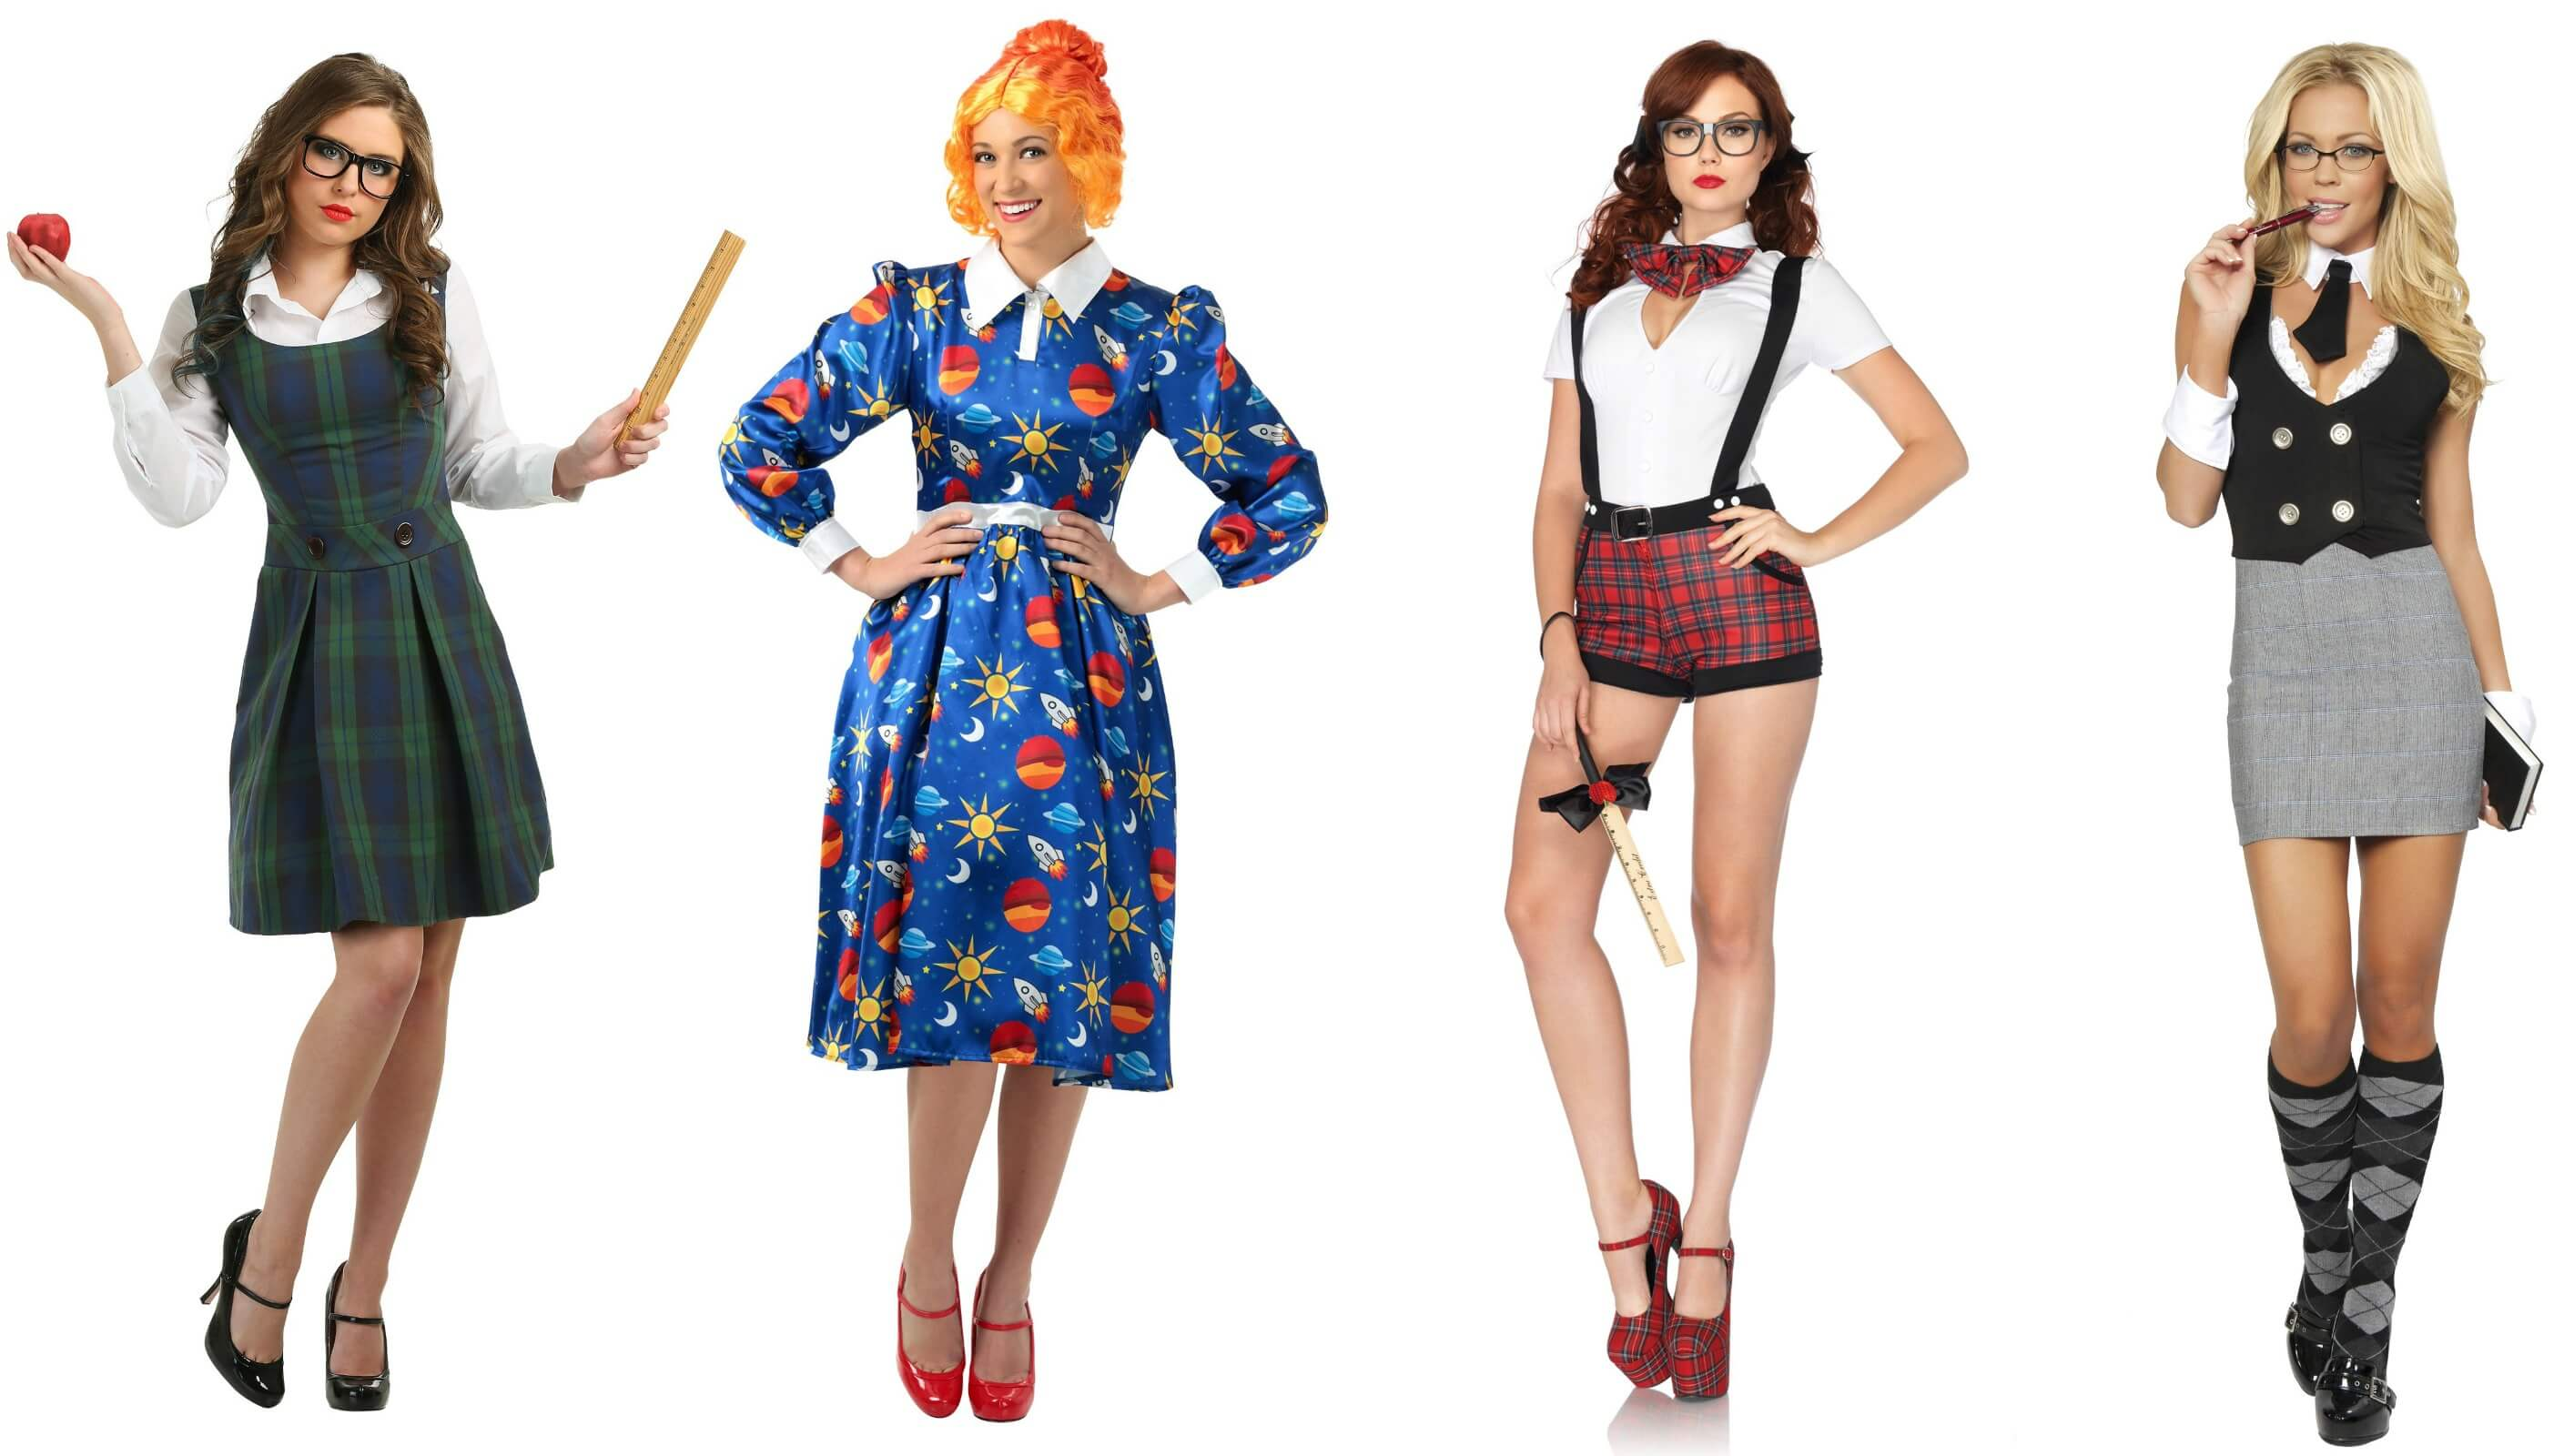 Educational Halloween costumes for Education Majors